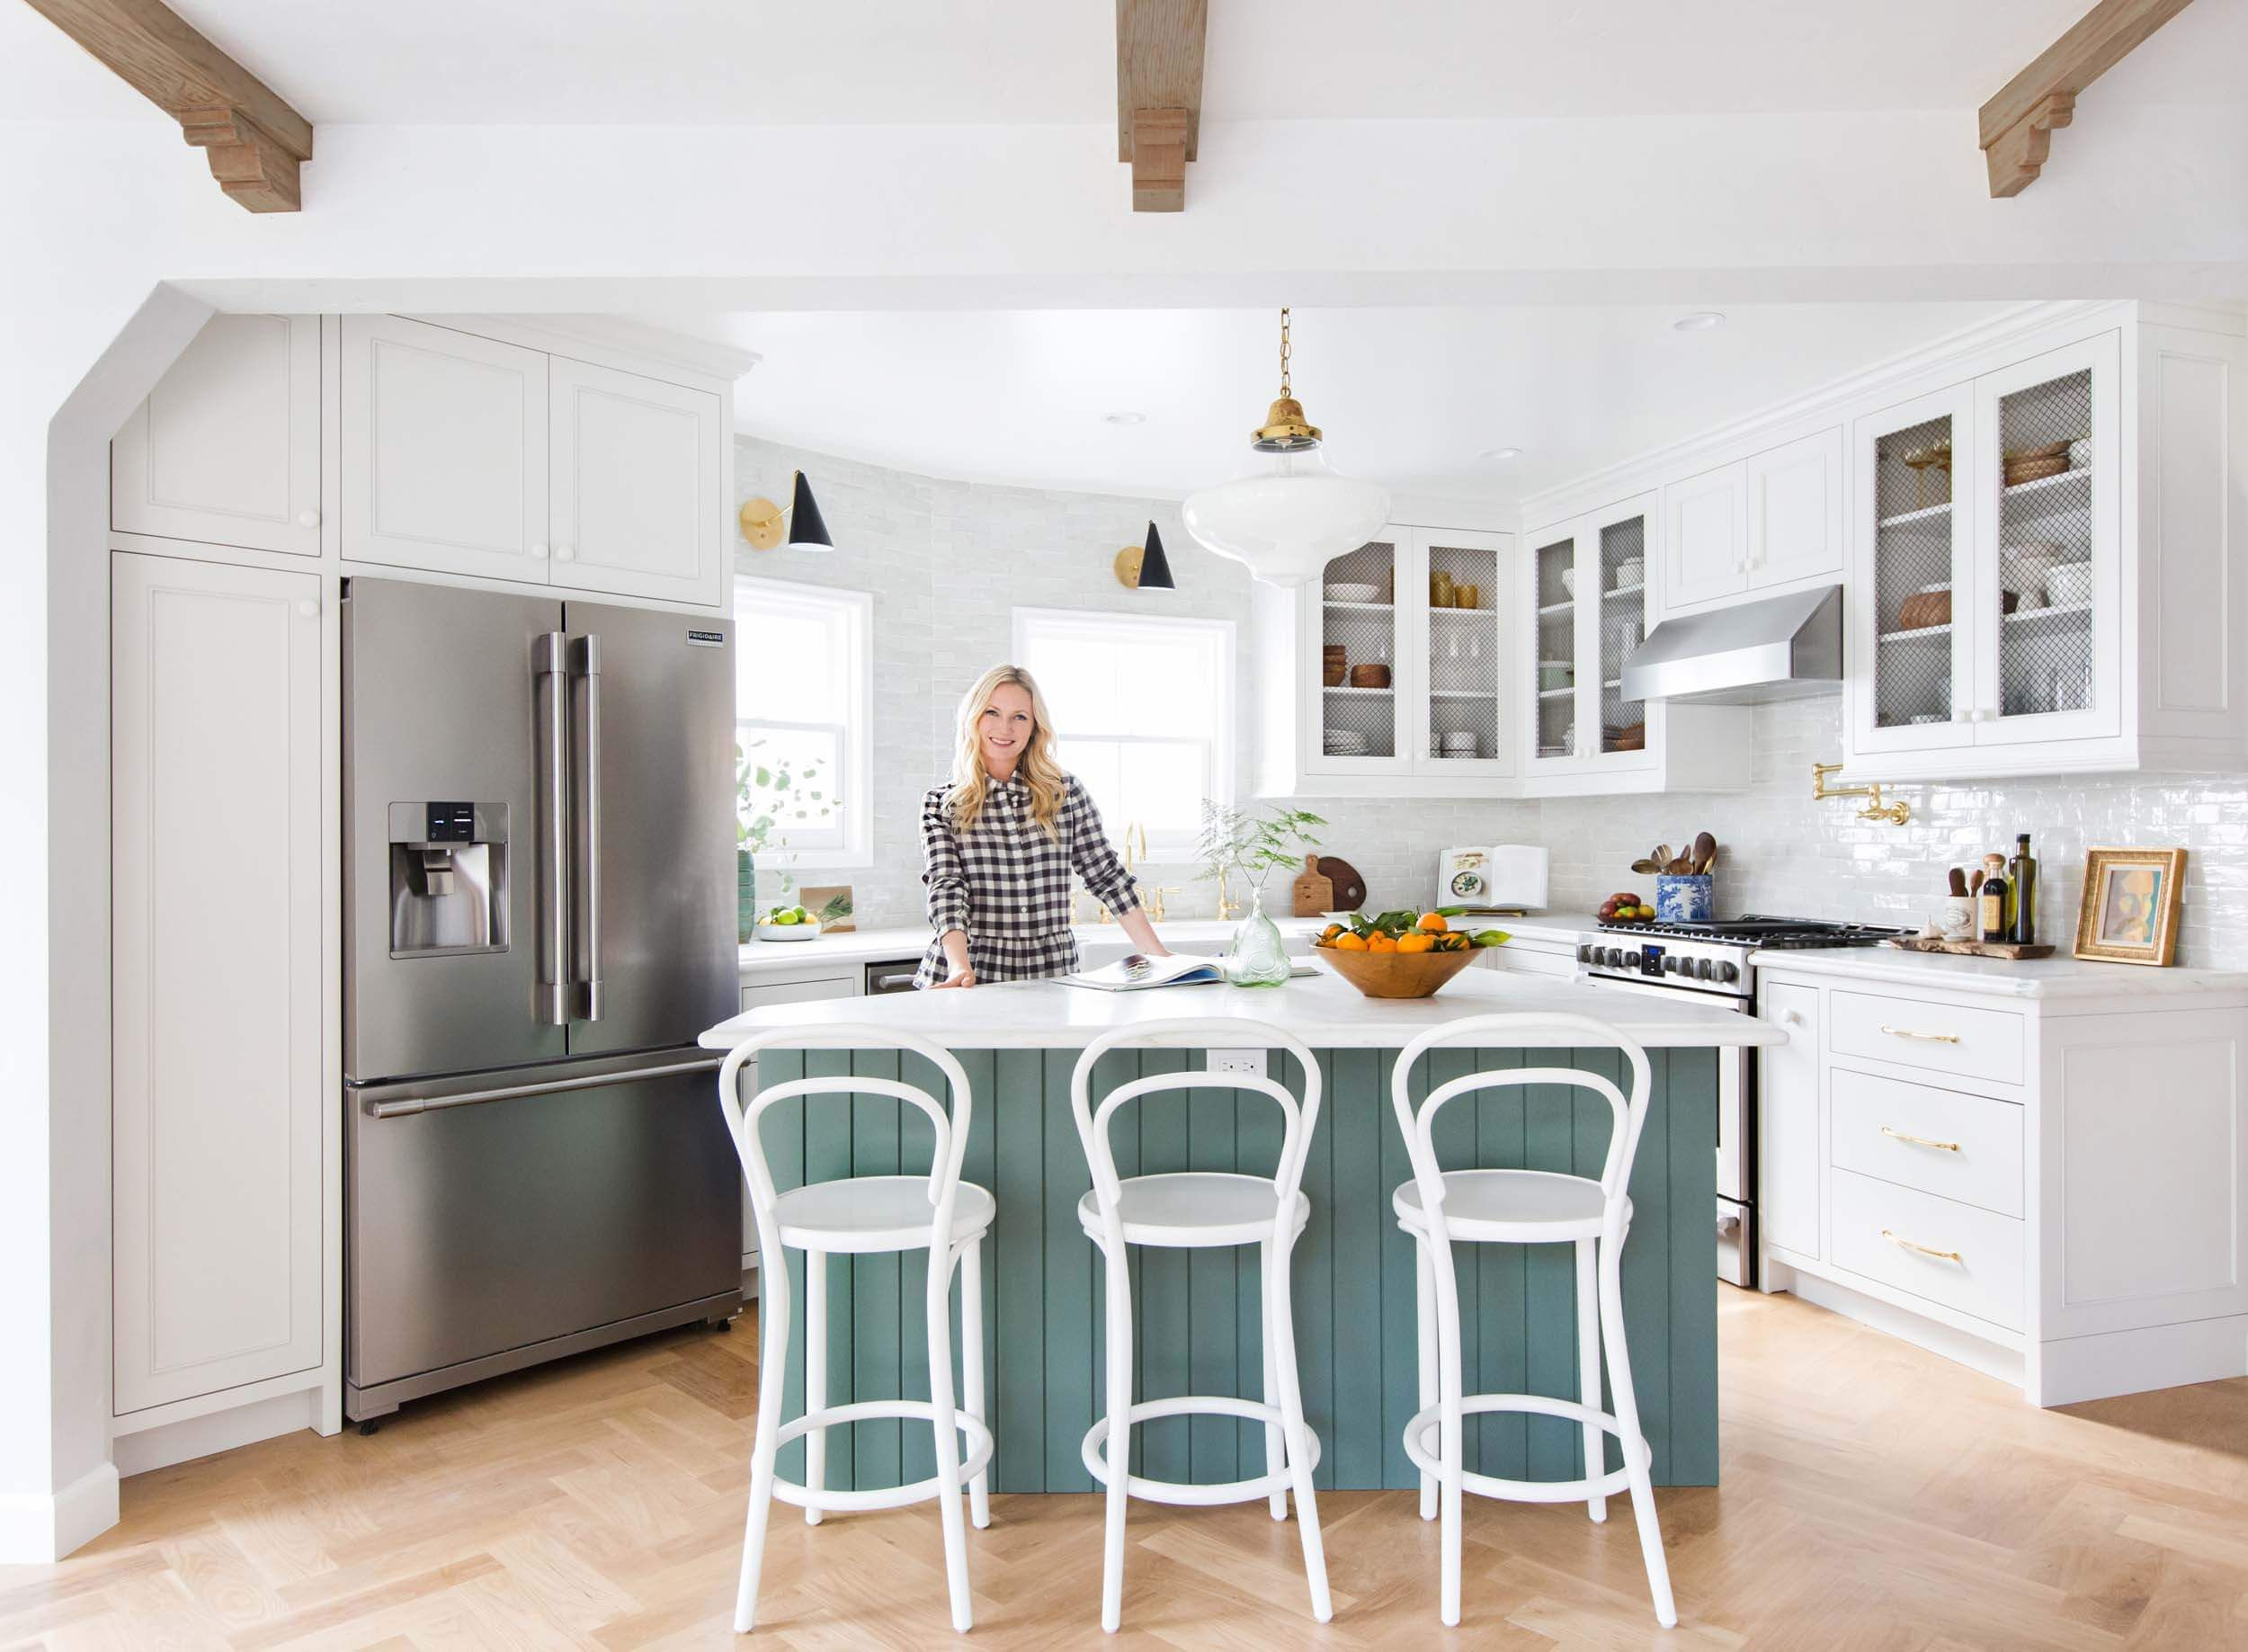 Our Modern English Country Kitchen Emily Henderson Kitchen Remodel Design English Country Kitchens Country Kitchen